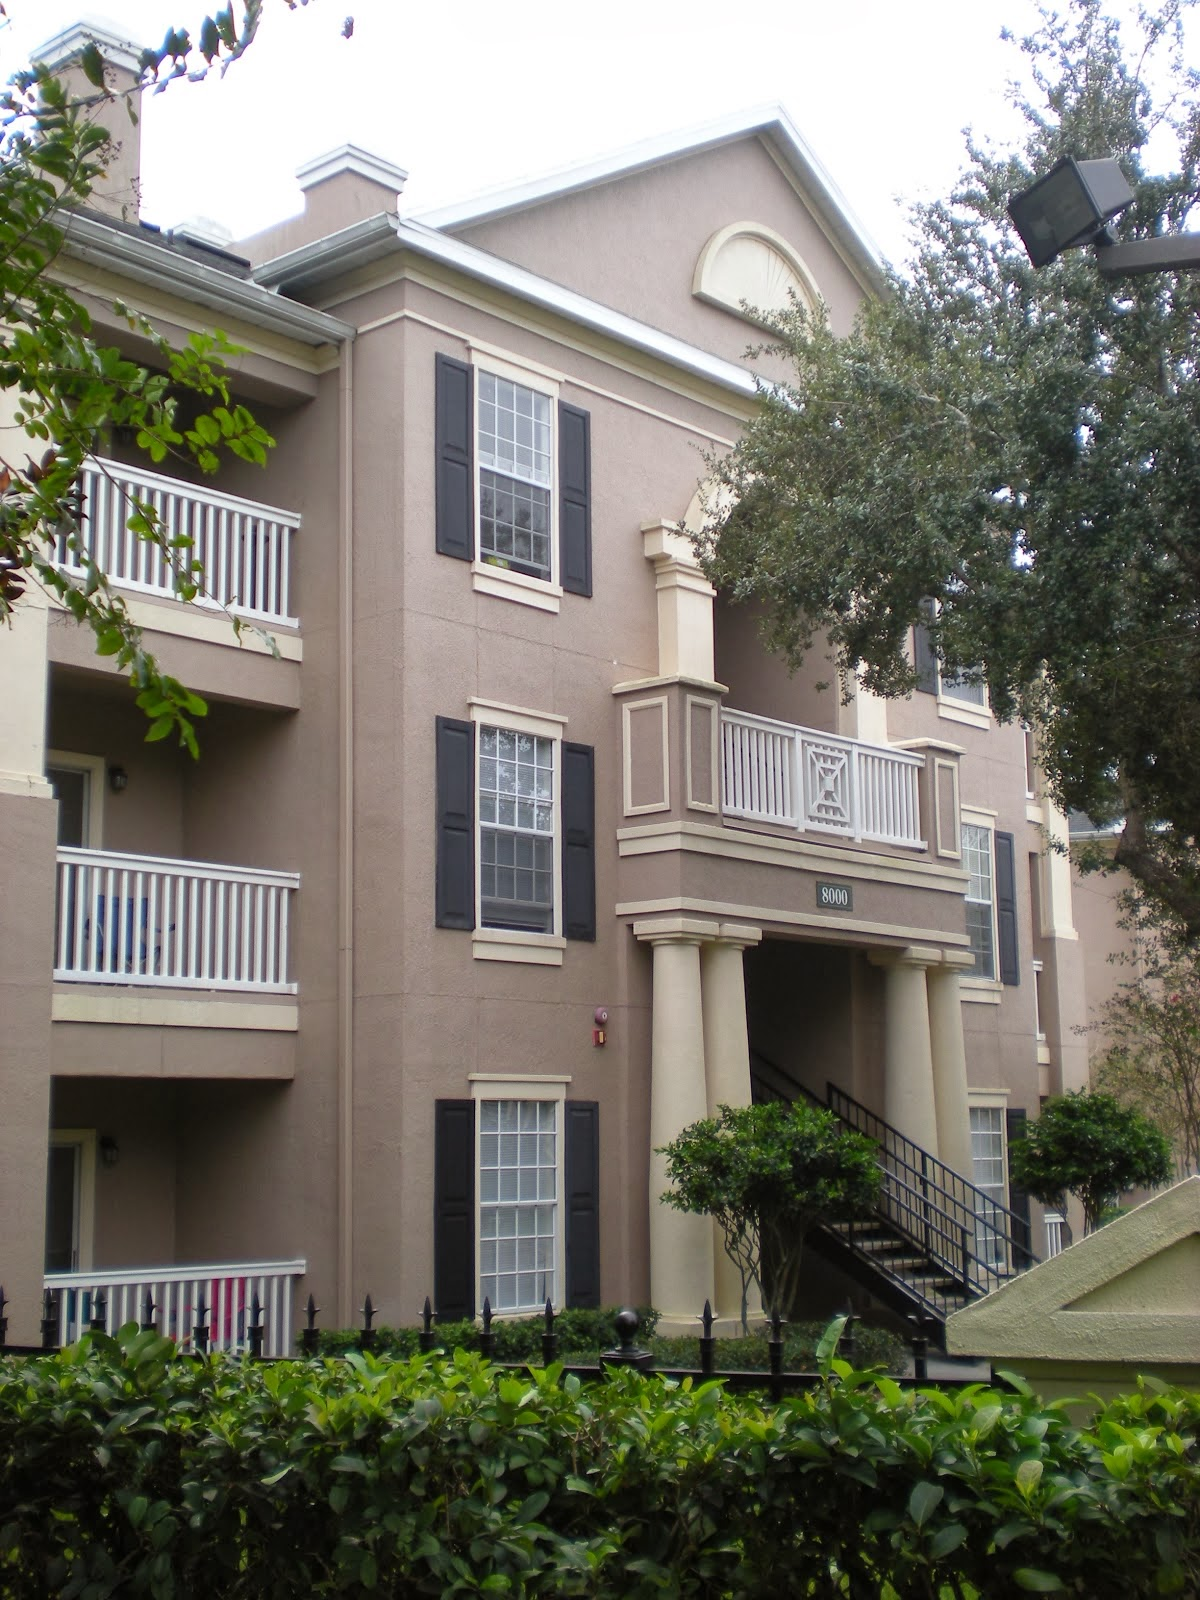 The Commons Disney Housing Pictures